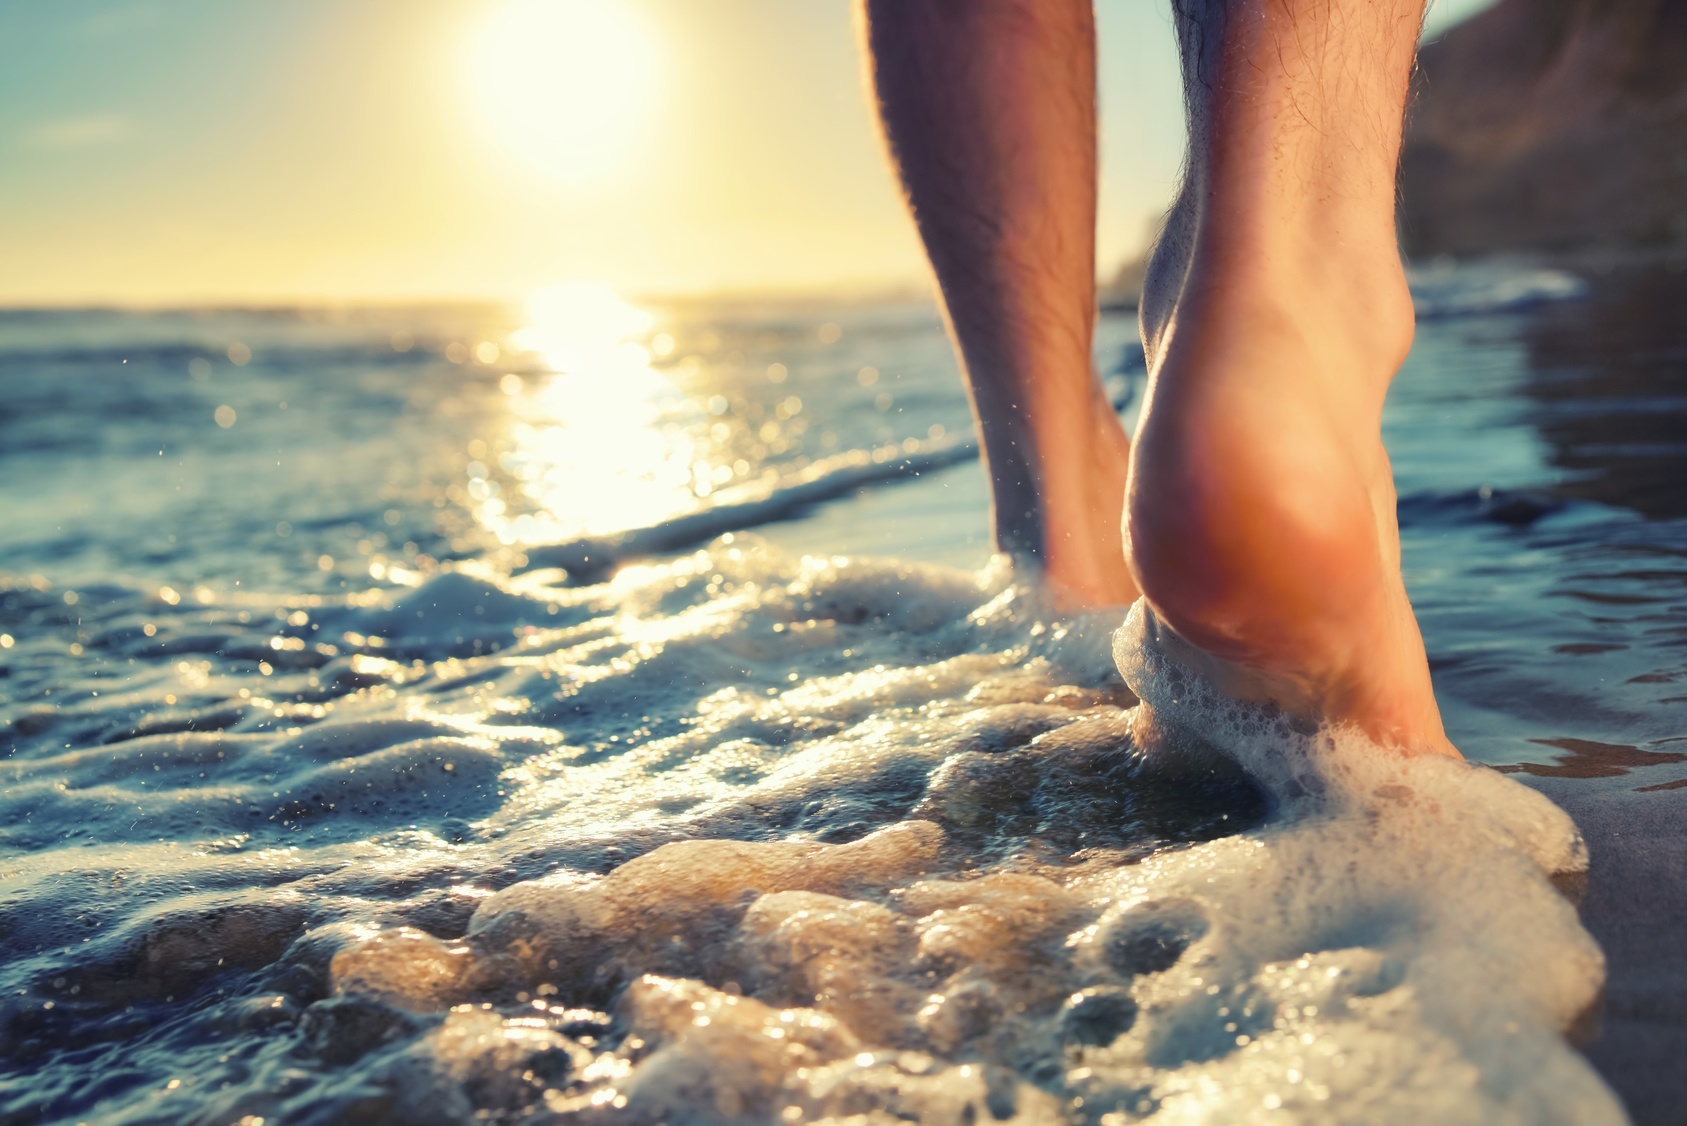 Closeup of a man's bare feet walking at a beach at sunset, with a wave's edge foaming gently beneath them, toned colors